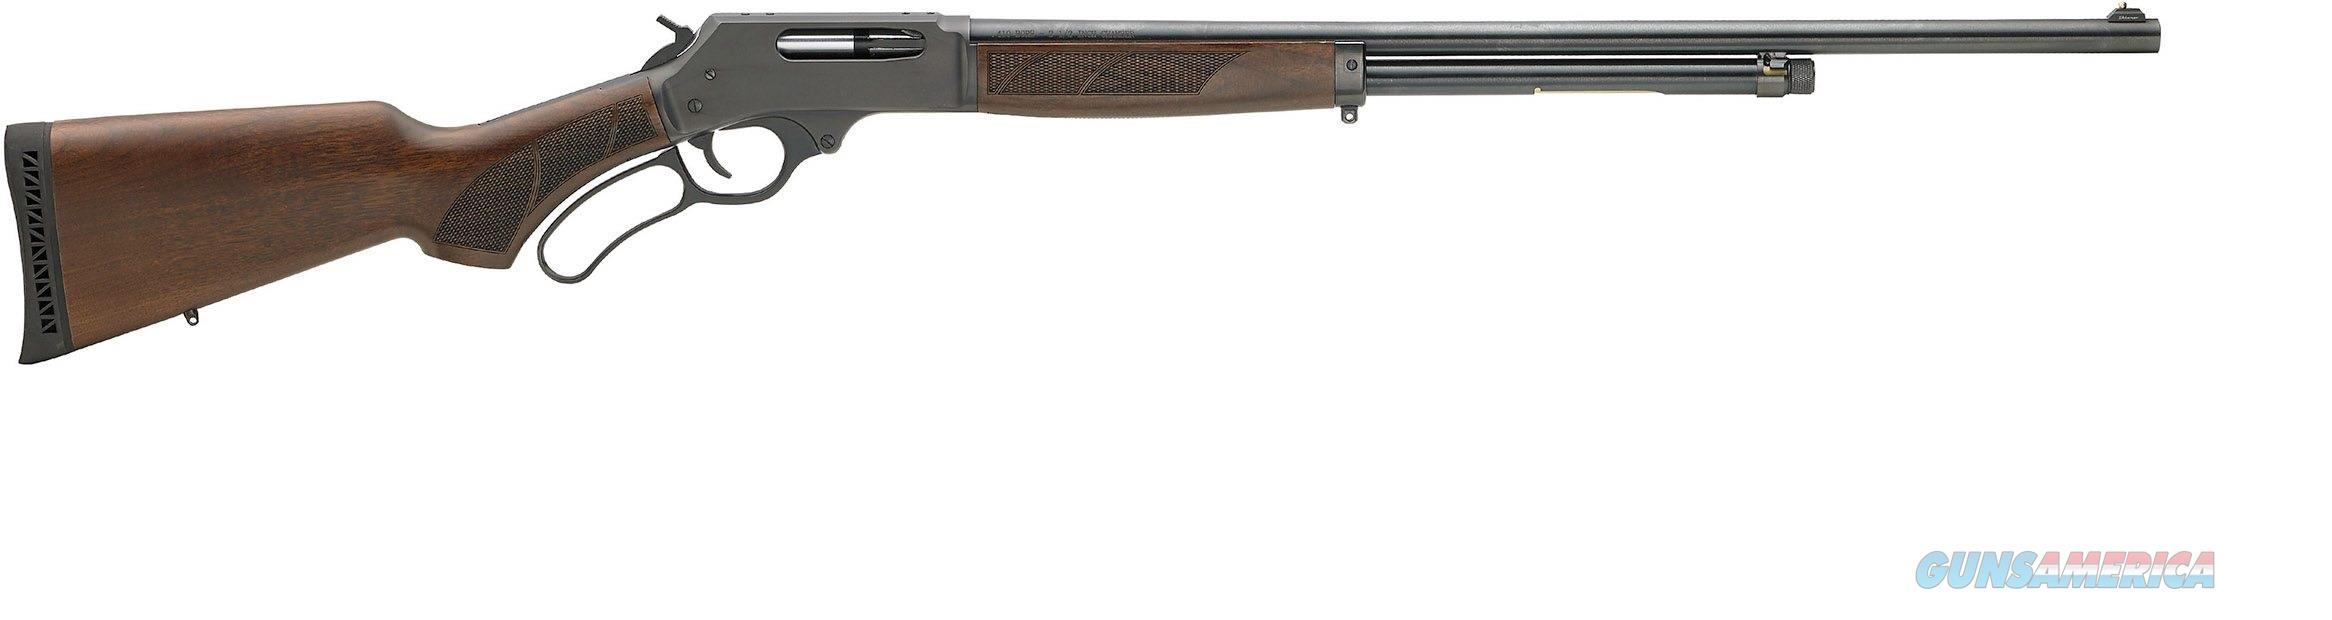 "Henry Lever Action Shotgun .410 Bore 24"" 5 Rounds H018-410   Guns > Shotguns > H Misc Shotguns"